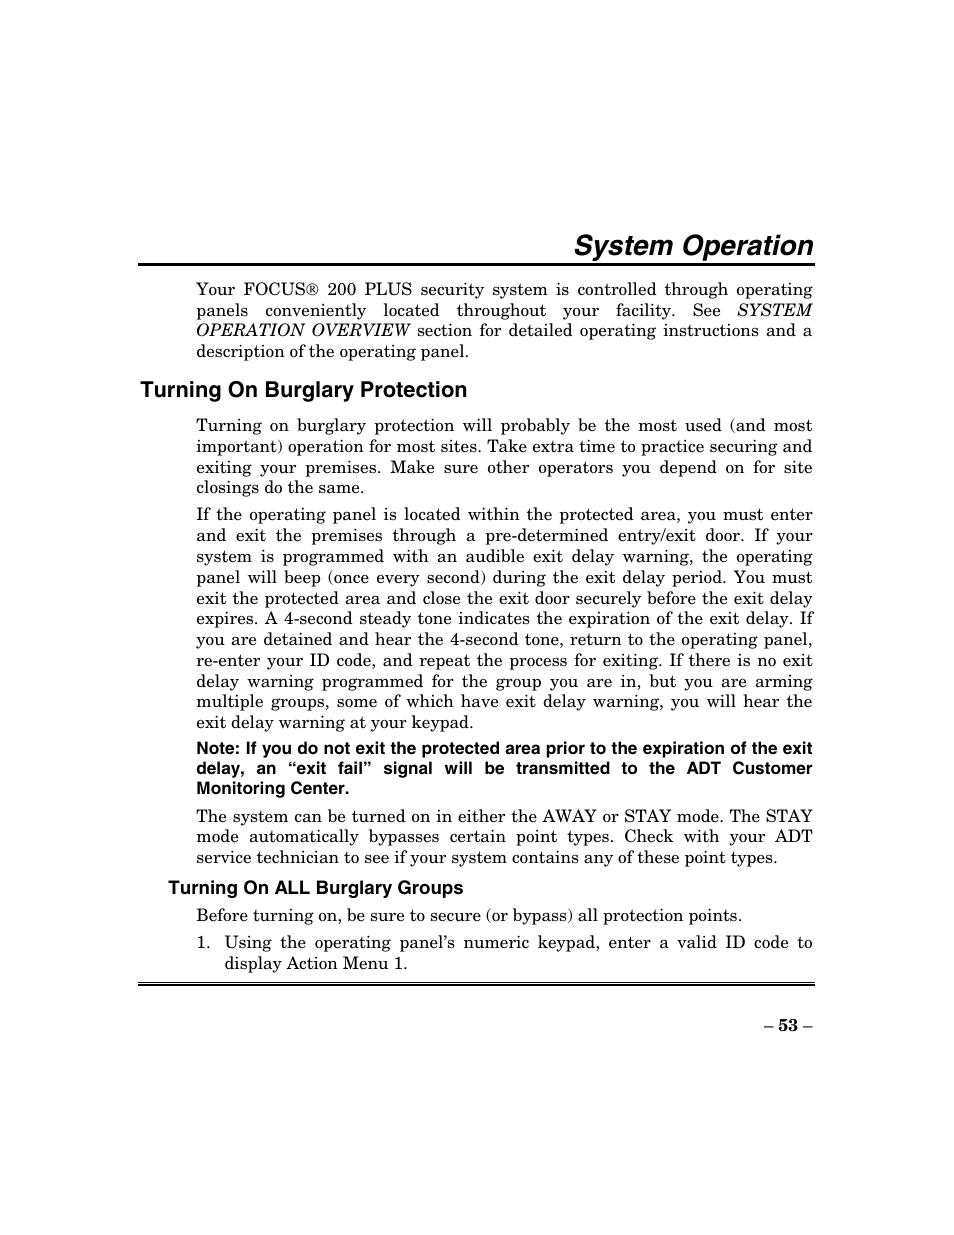 System operation | ADT Security Services Focus 200 Plus User Manual | Page  53 / 88